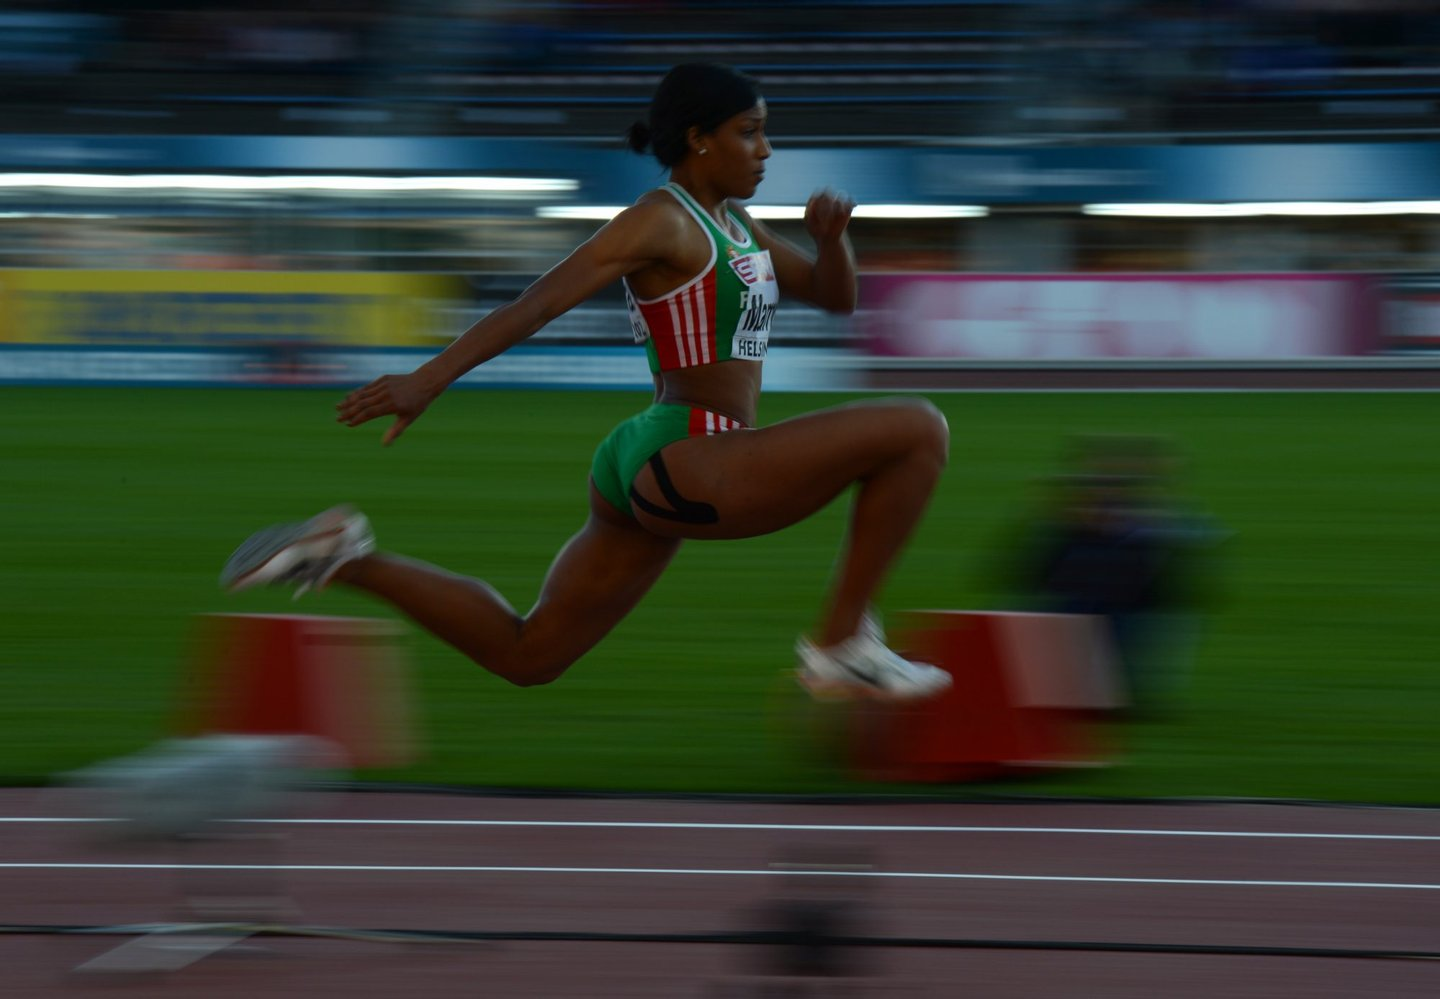 Portugal's Patricia Mamona competes during the women's triple jump final at the 2012 European Athletics Championships at the Olympic Stadium in Helsinki on June 29, 2012. AFP PHOTO / ADRIAN DENNIS (Photo credit should read ADRIAN DENNIS/AFP/GettyImages)